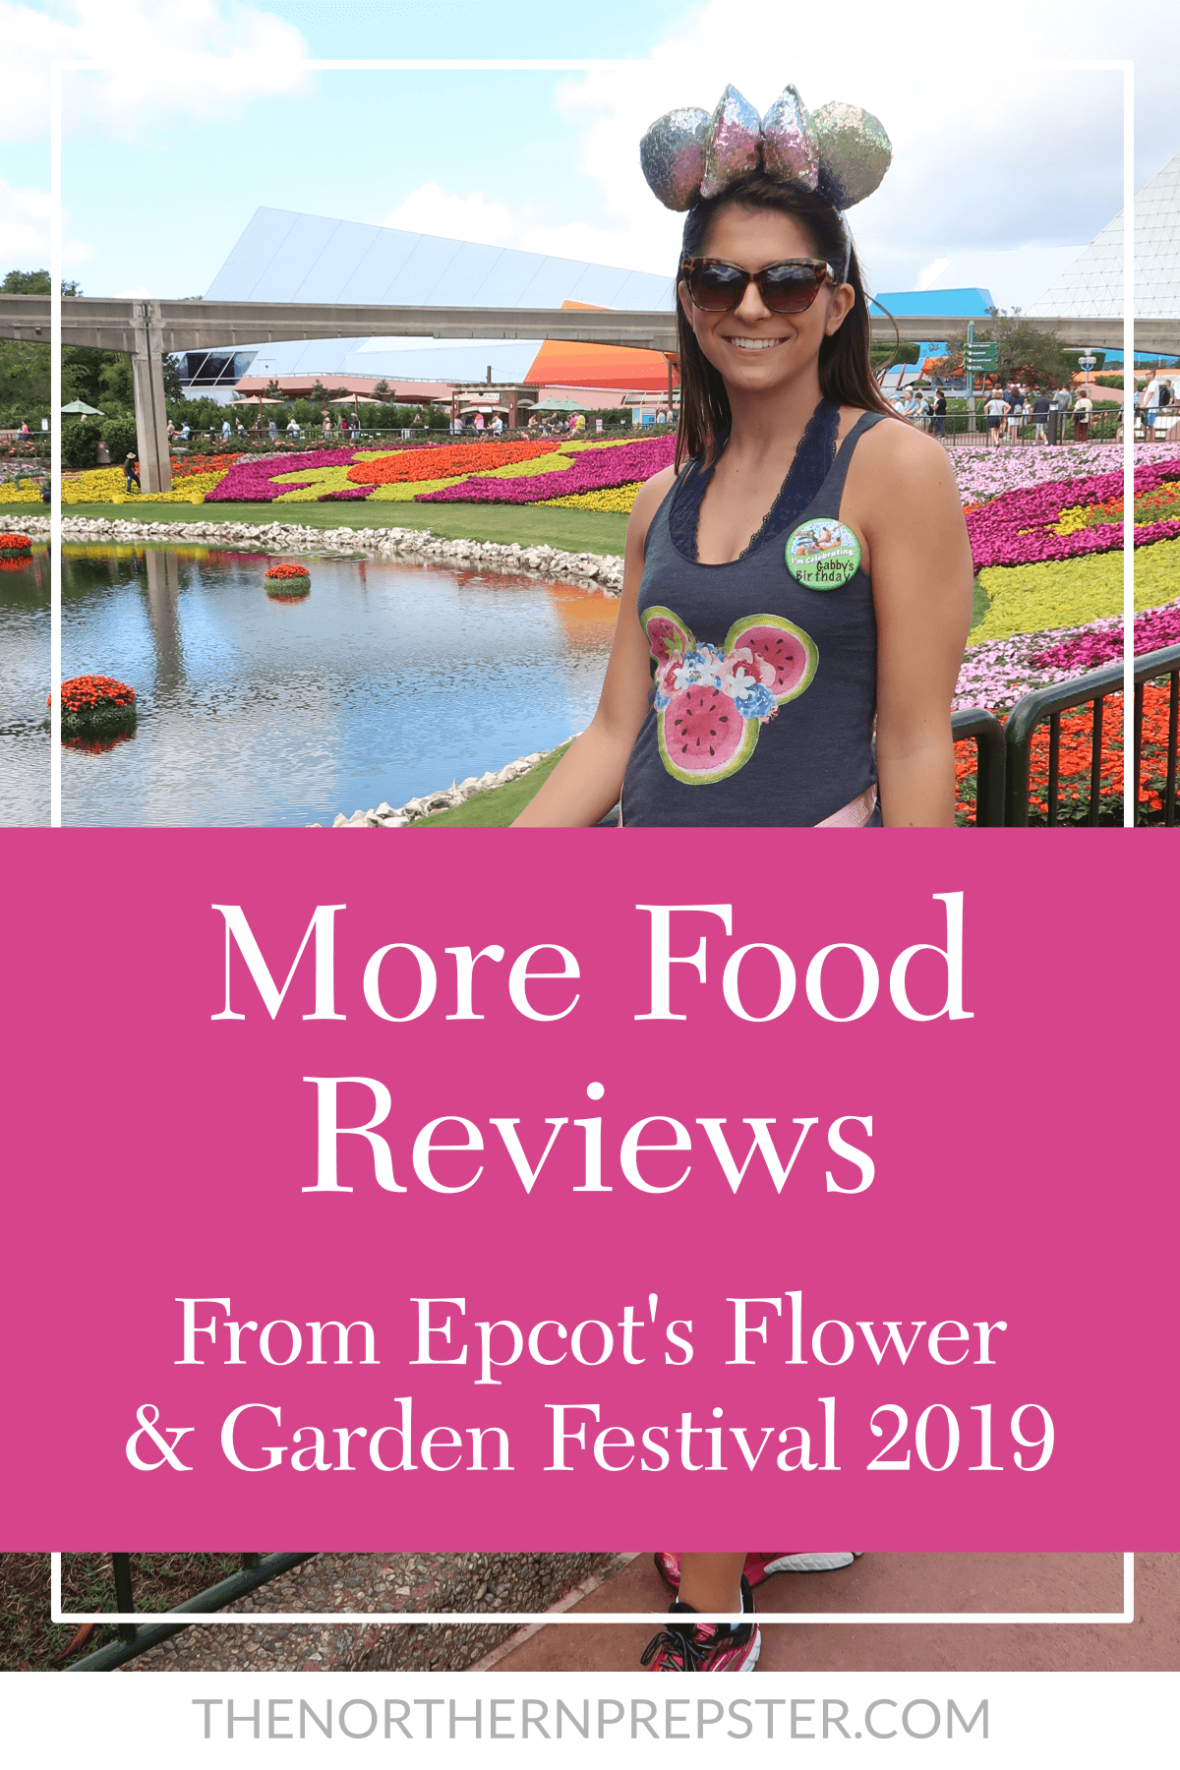 more food reviews from epcot's flower & garden festival 2019 – the